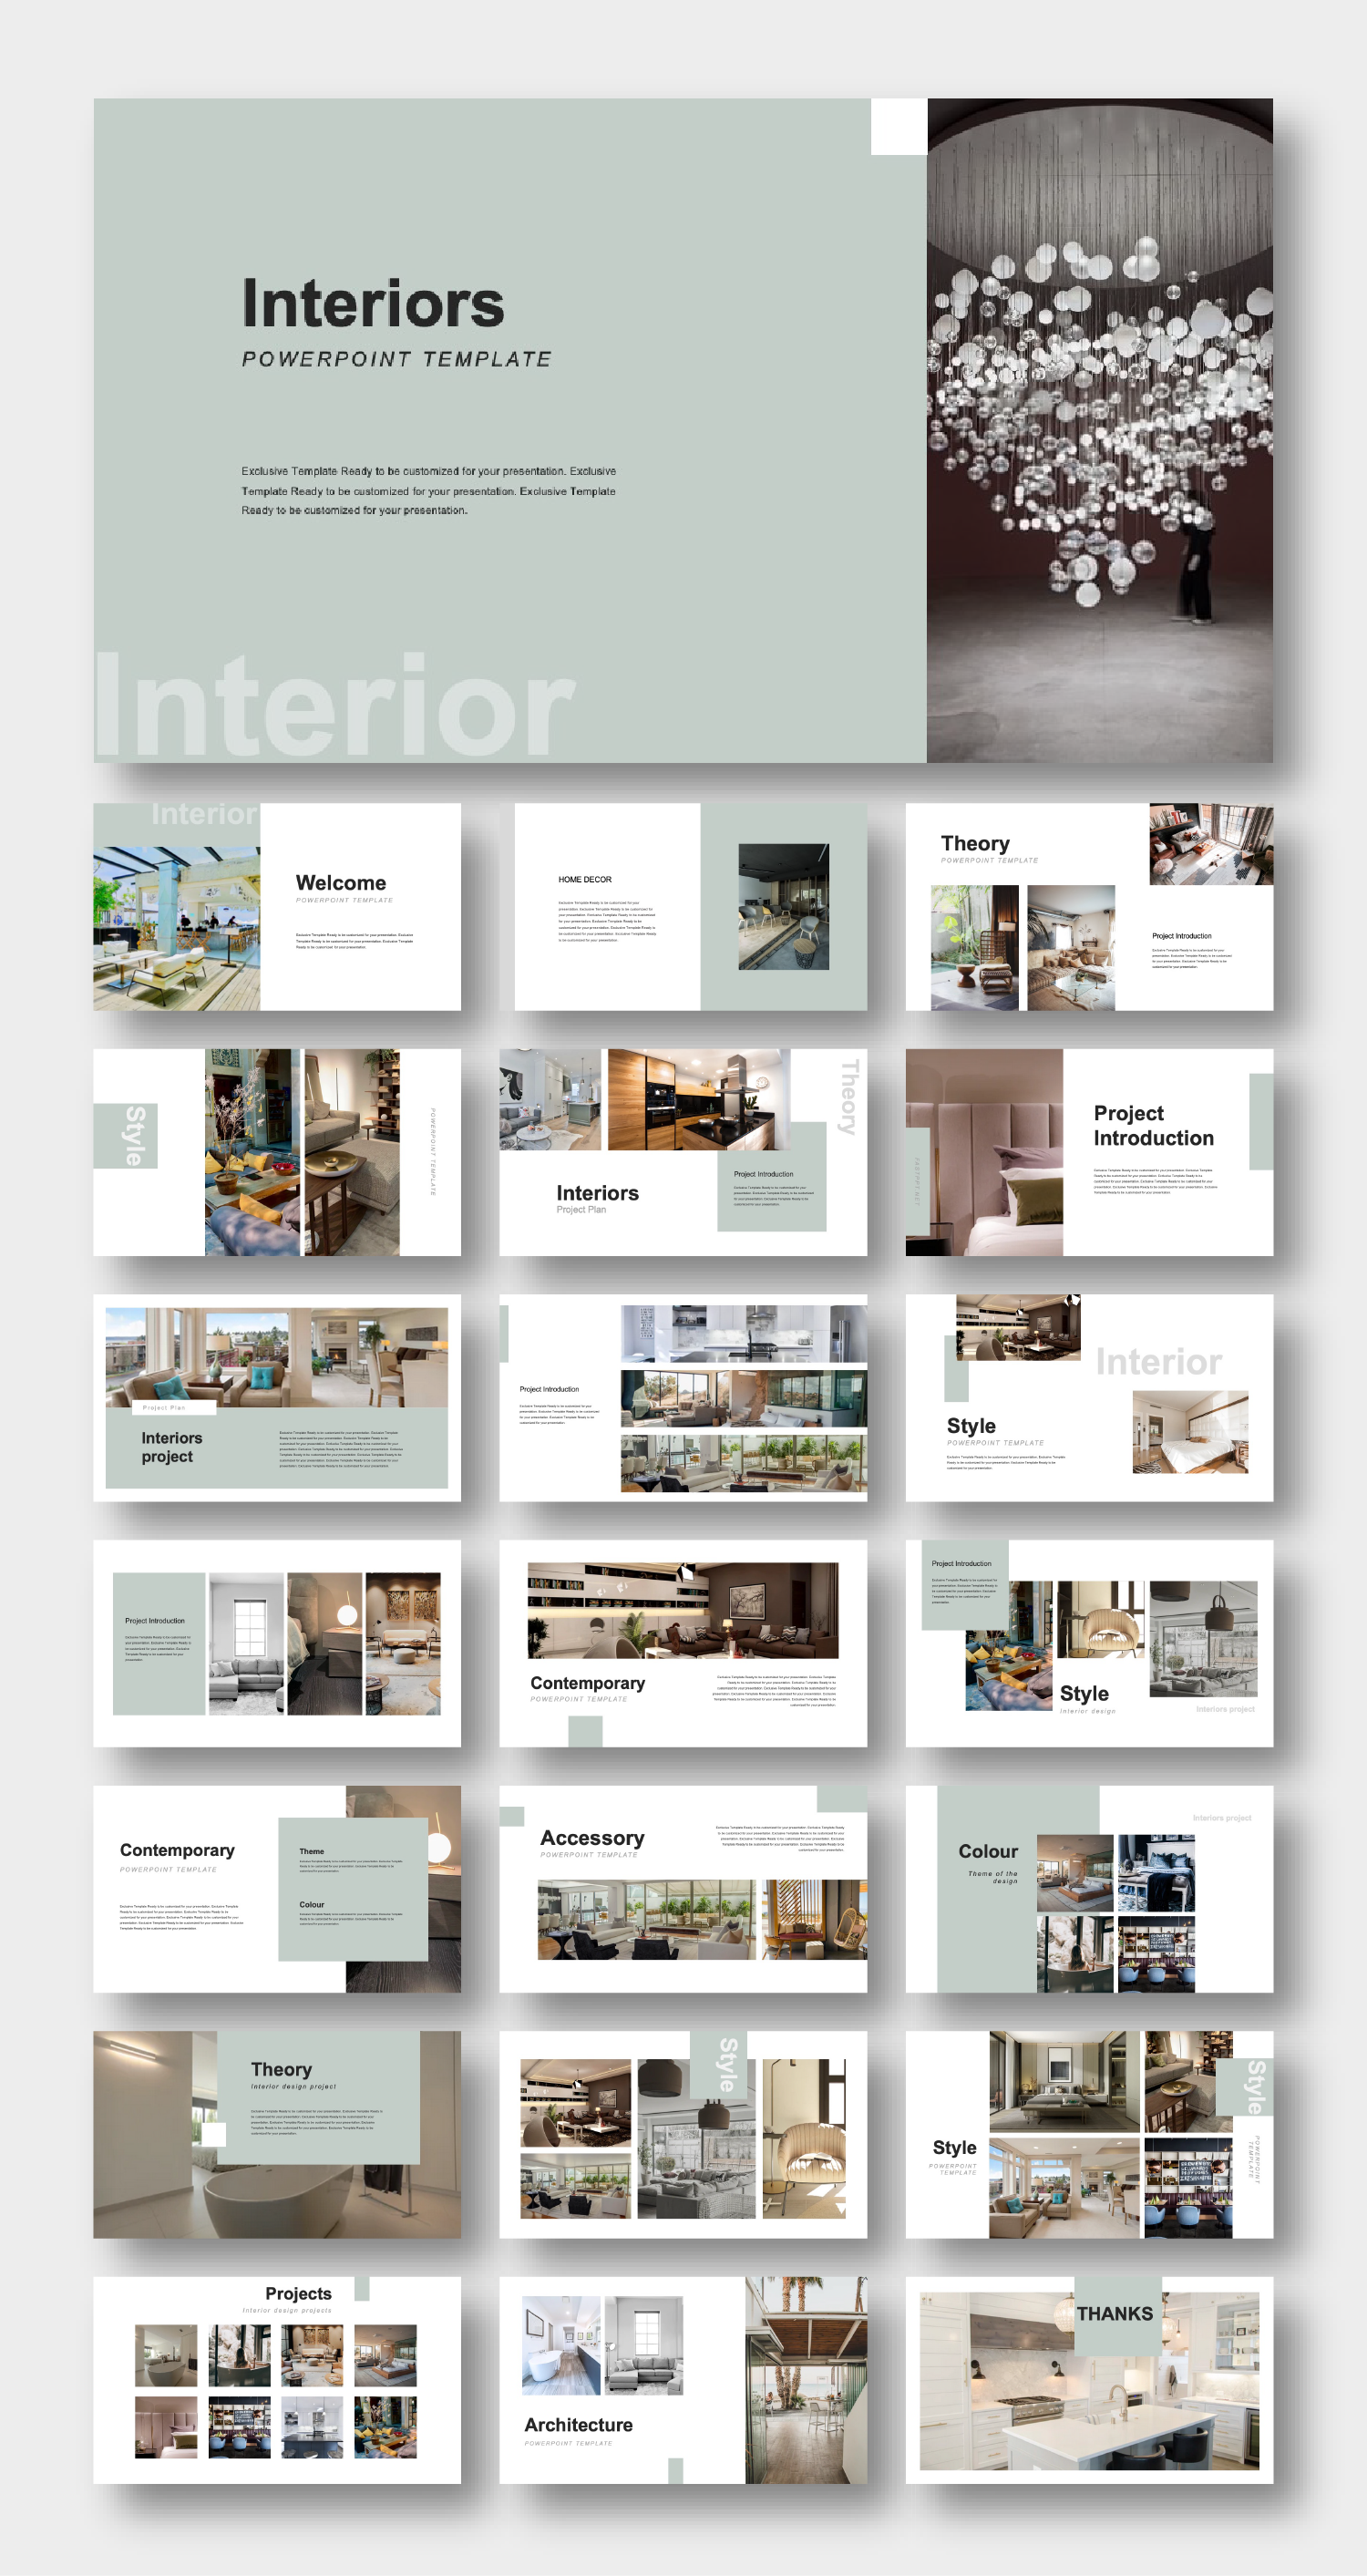 Creative Contemporary Interior Design Template Original And High Quality Powerpoint Templates Interior Design Template Interior Design Presentation Page Layout Design